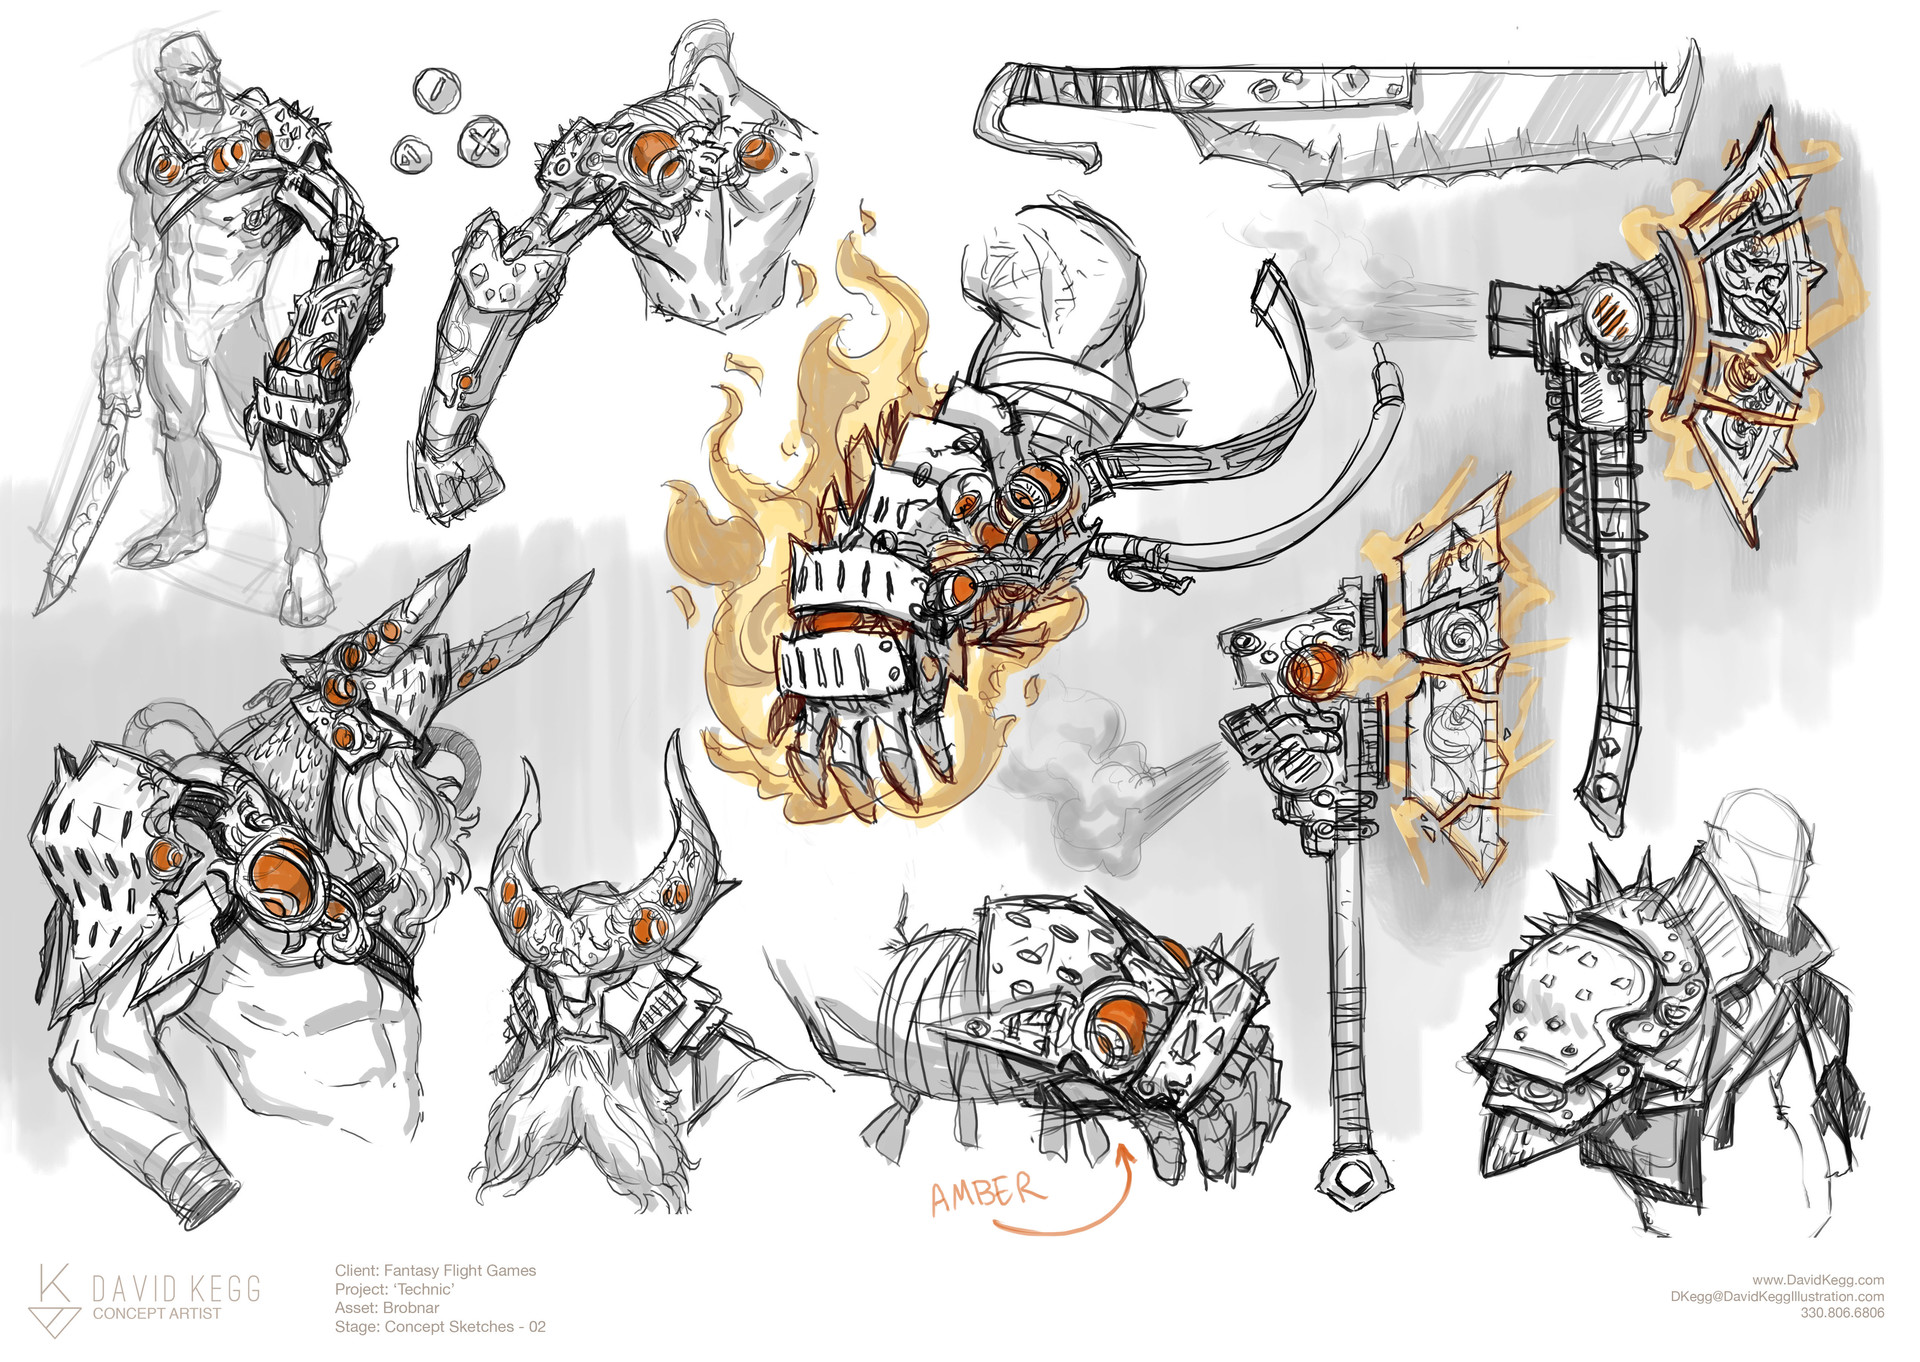 David kegg kegg ffgtechnic brobnar conceptsketches 02